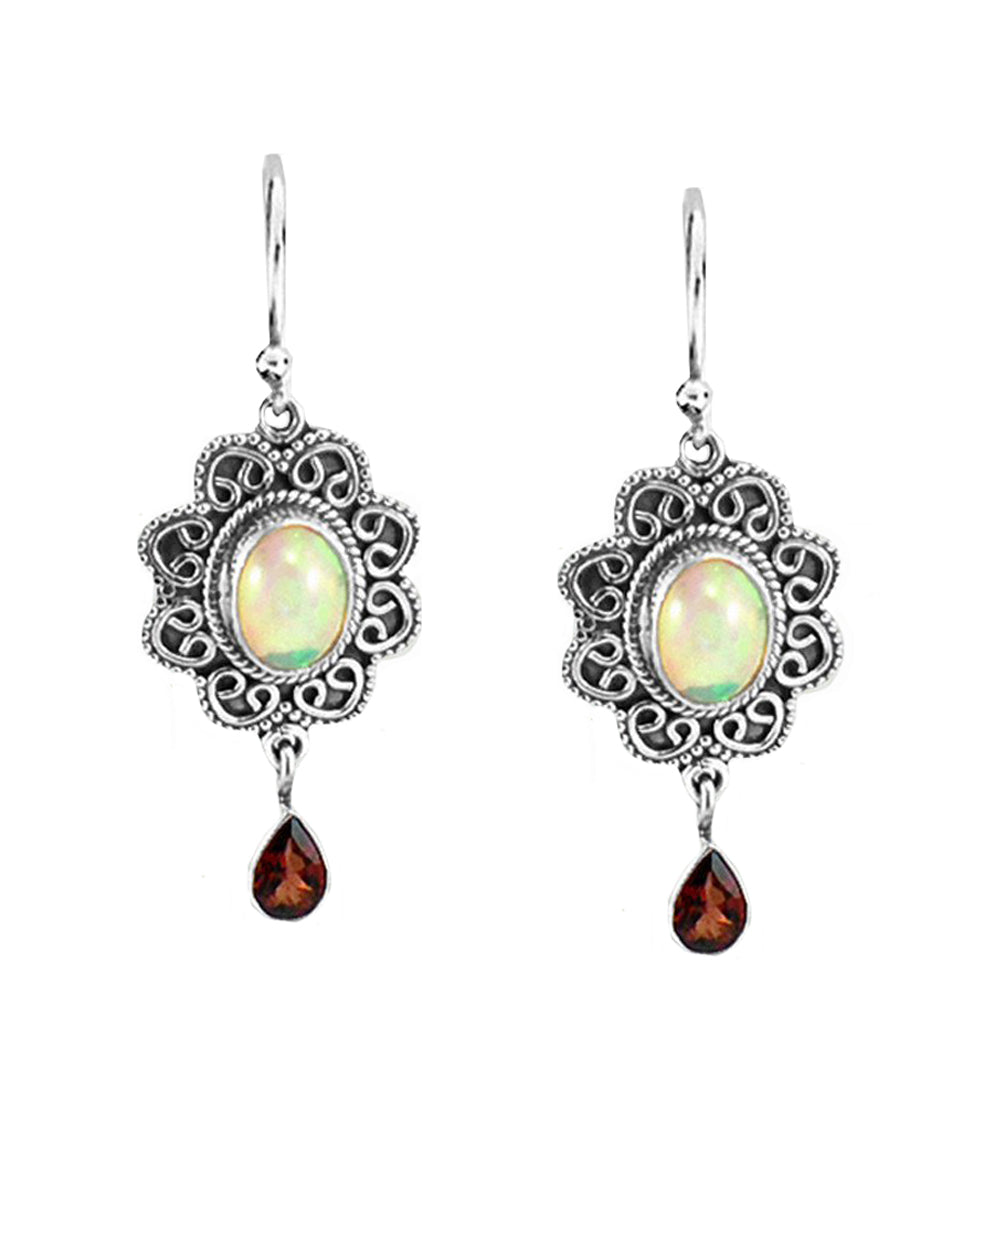 Brilliance Fire Opal and Garnet Sterling Silver Earrings